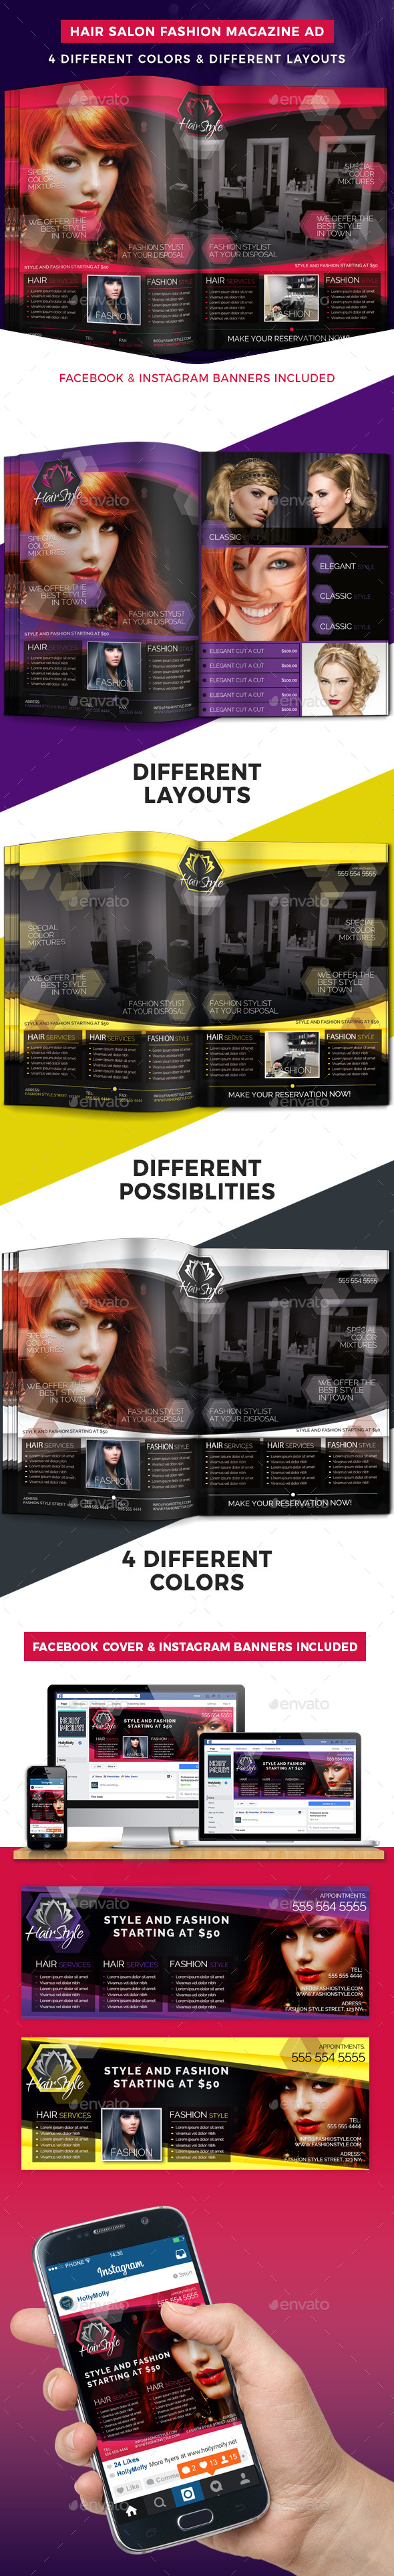 Hair Salon Fashion Style Magazine Ad - Magazines Print Templates